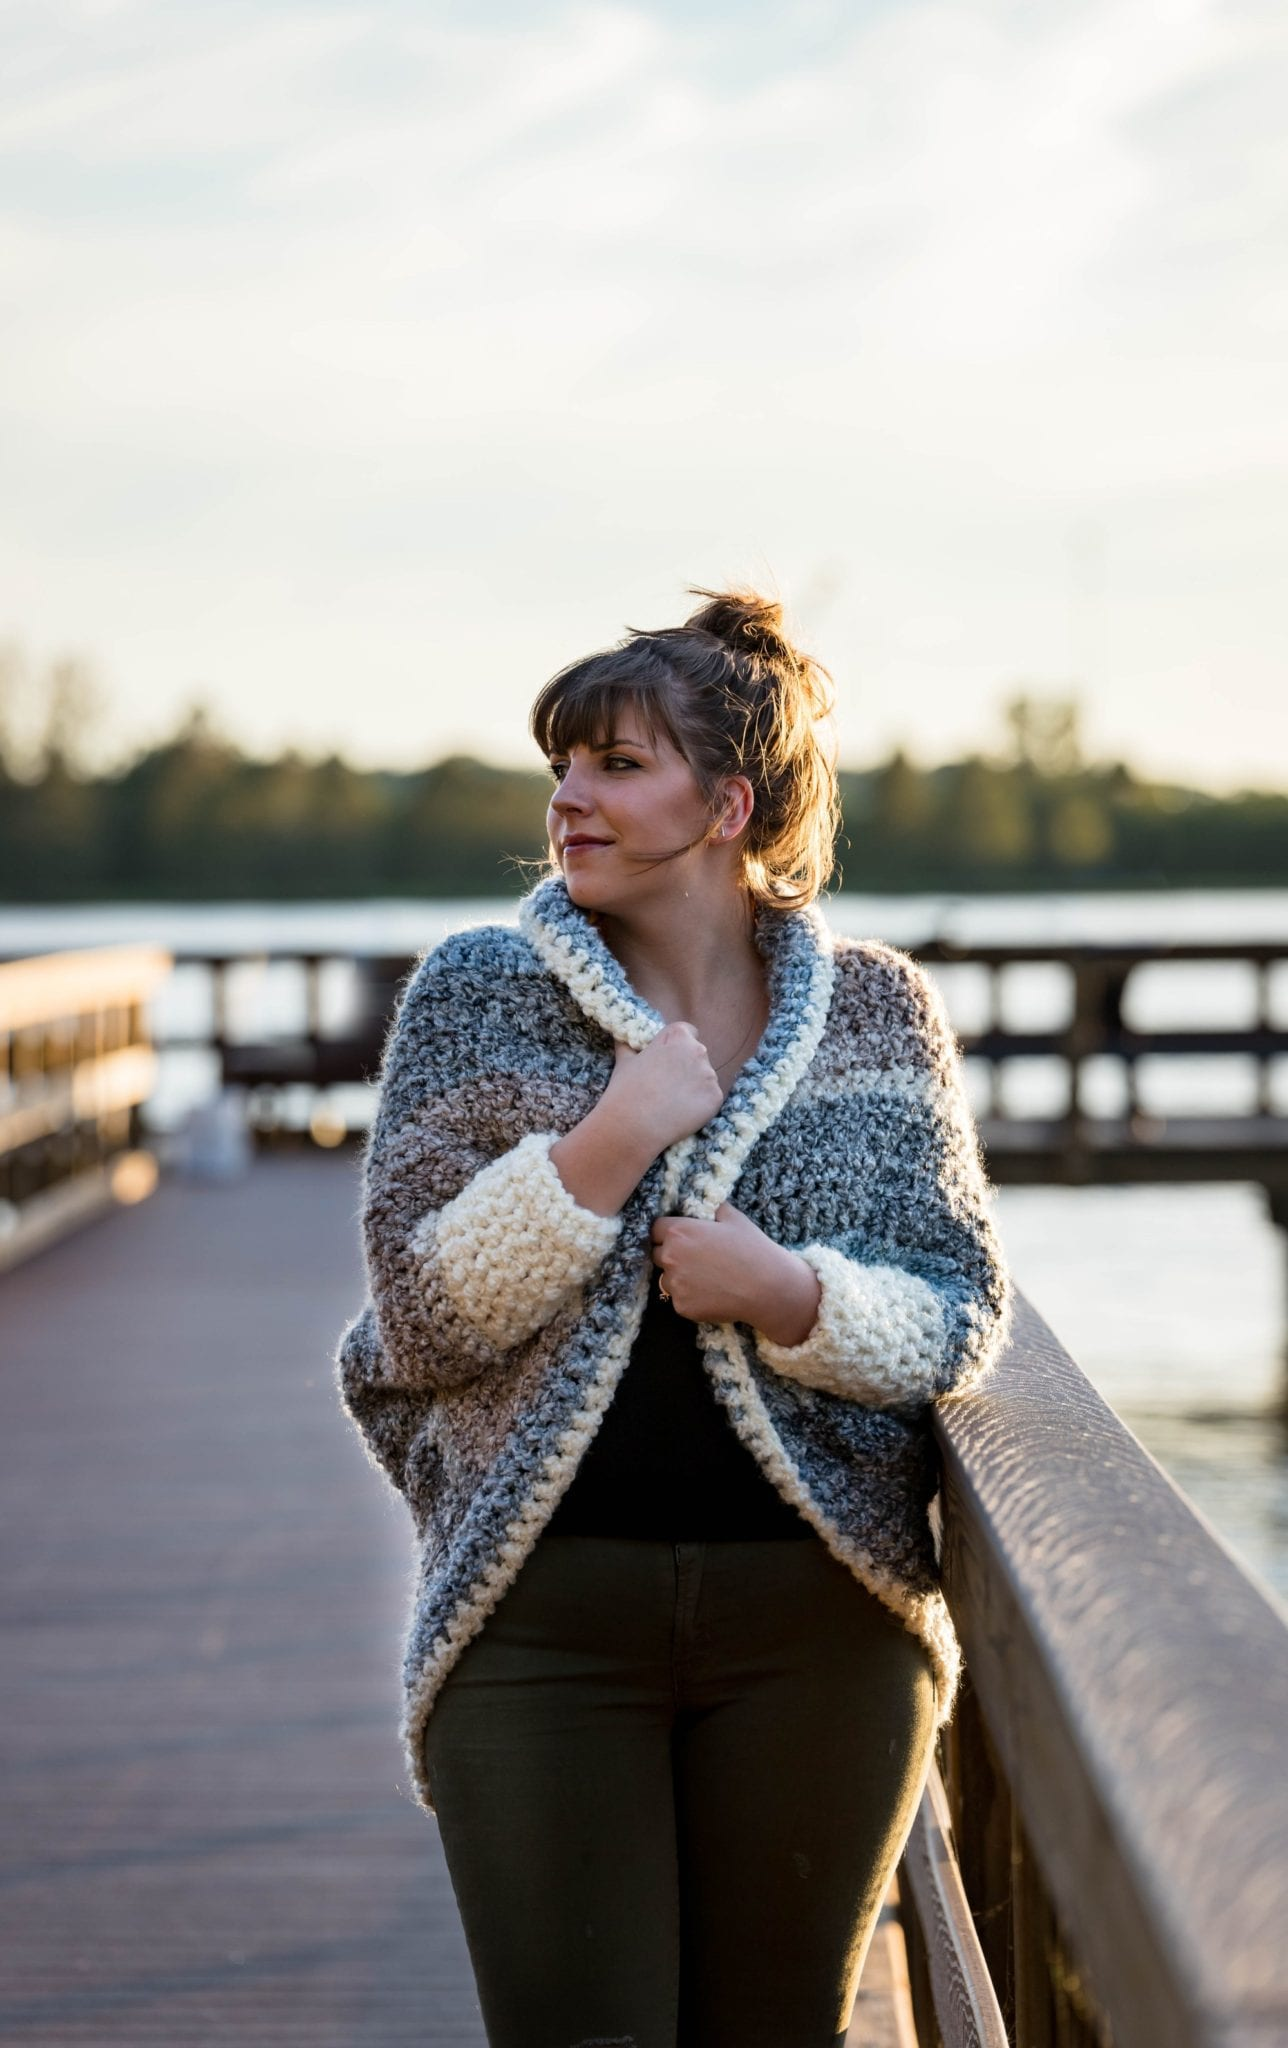 Crochet Projects to Sell at Craft Fairs - Sewrella